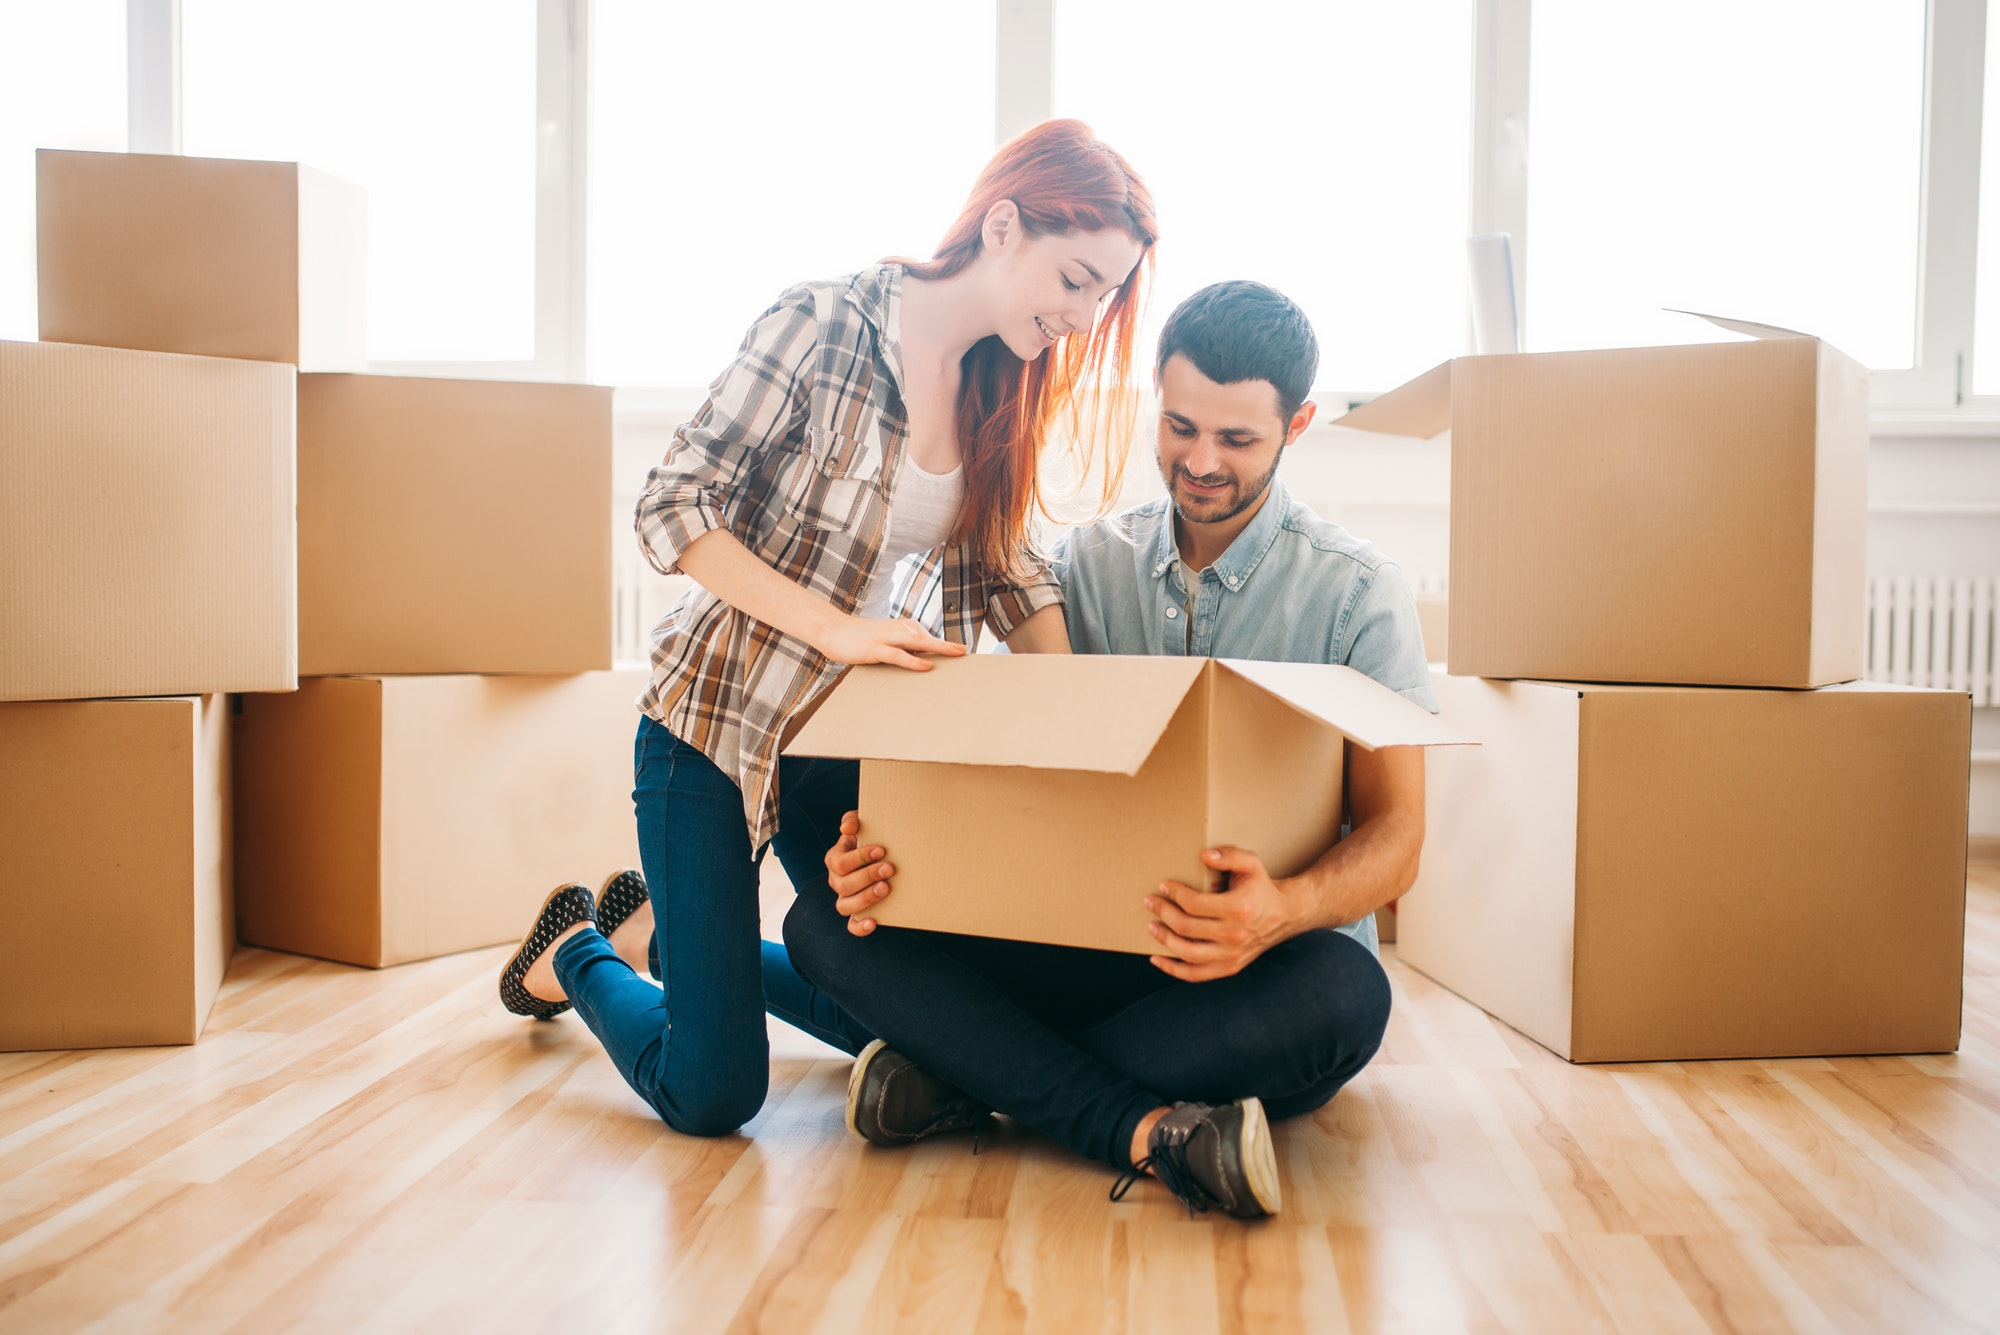 Couple unpacking boxes with property, housewarming